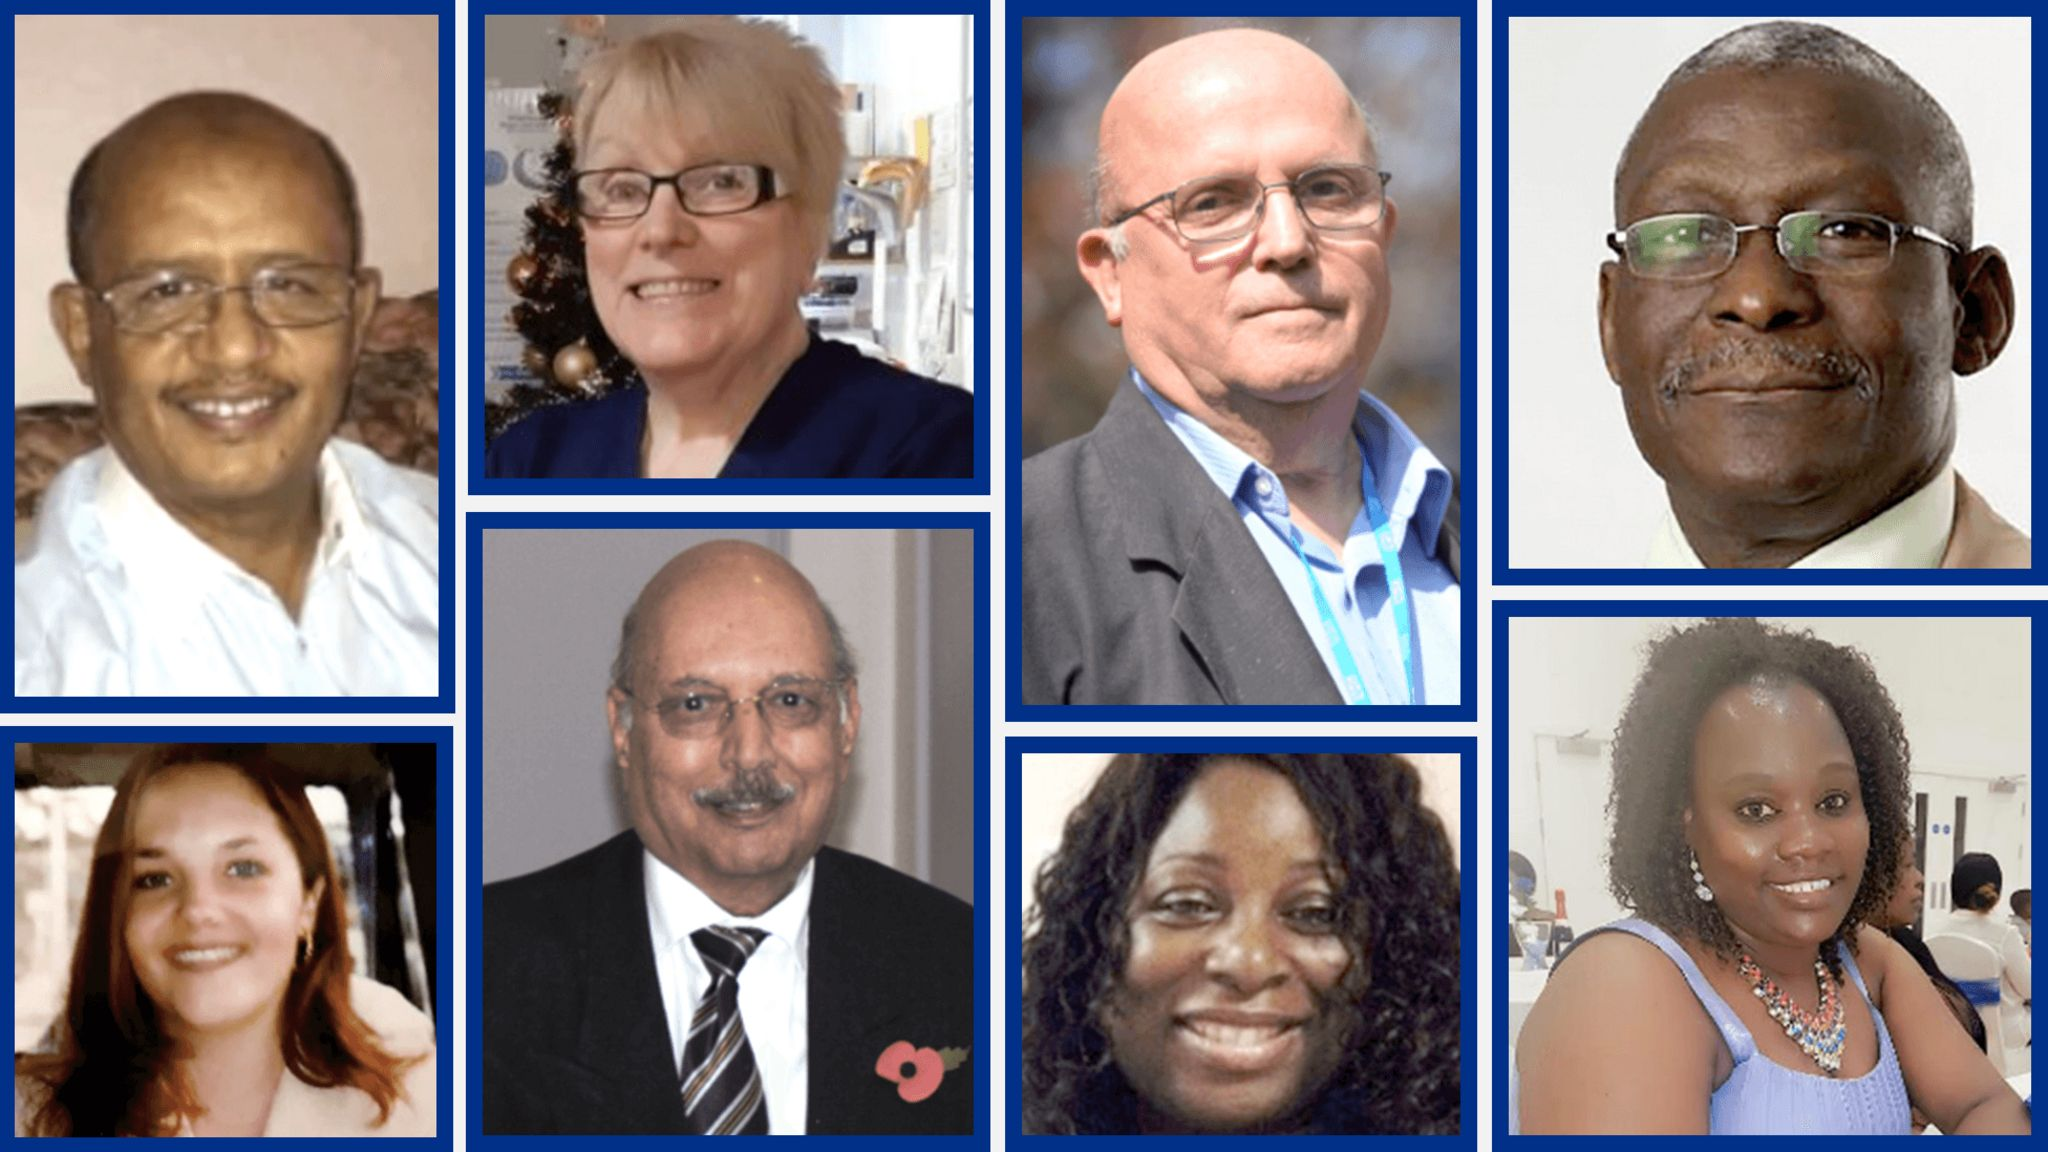 Photos of some of the NHS workers who have died from Coronavirus - 28 April